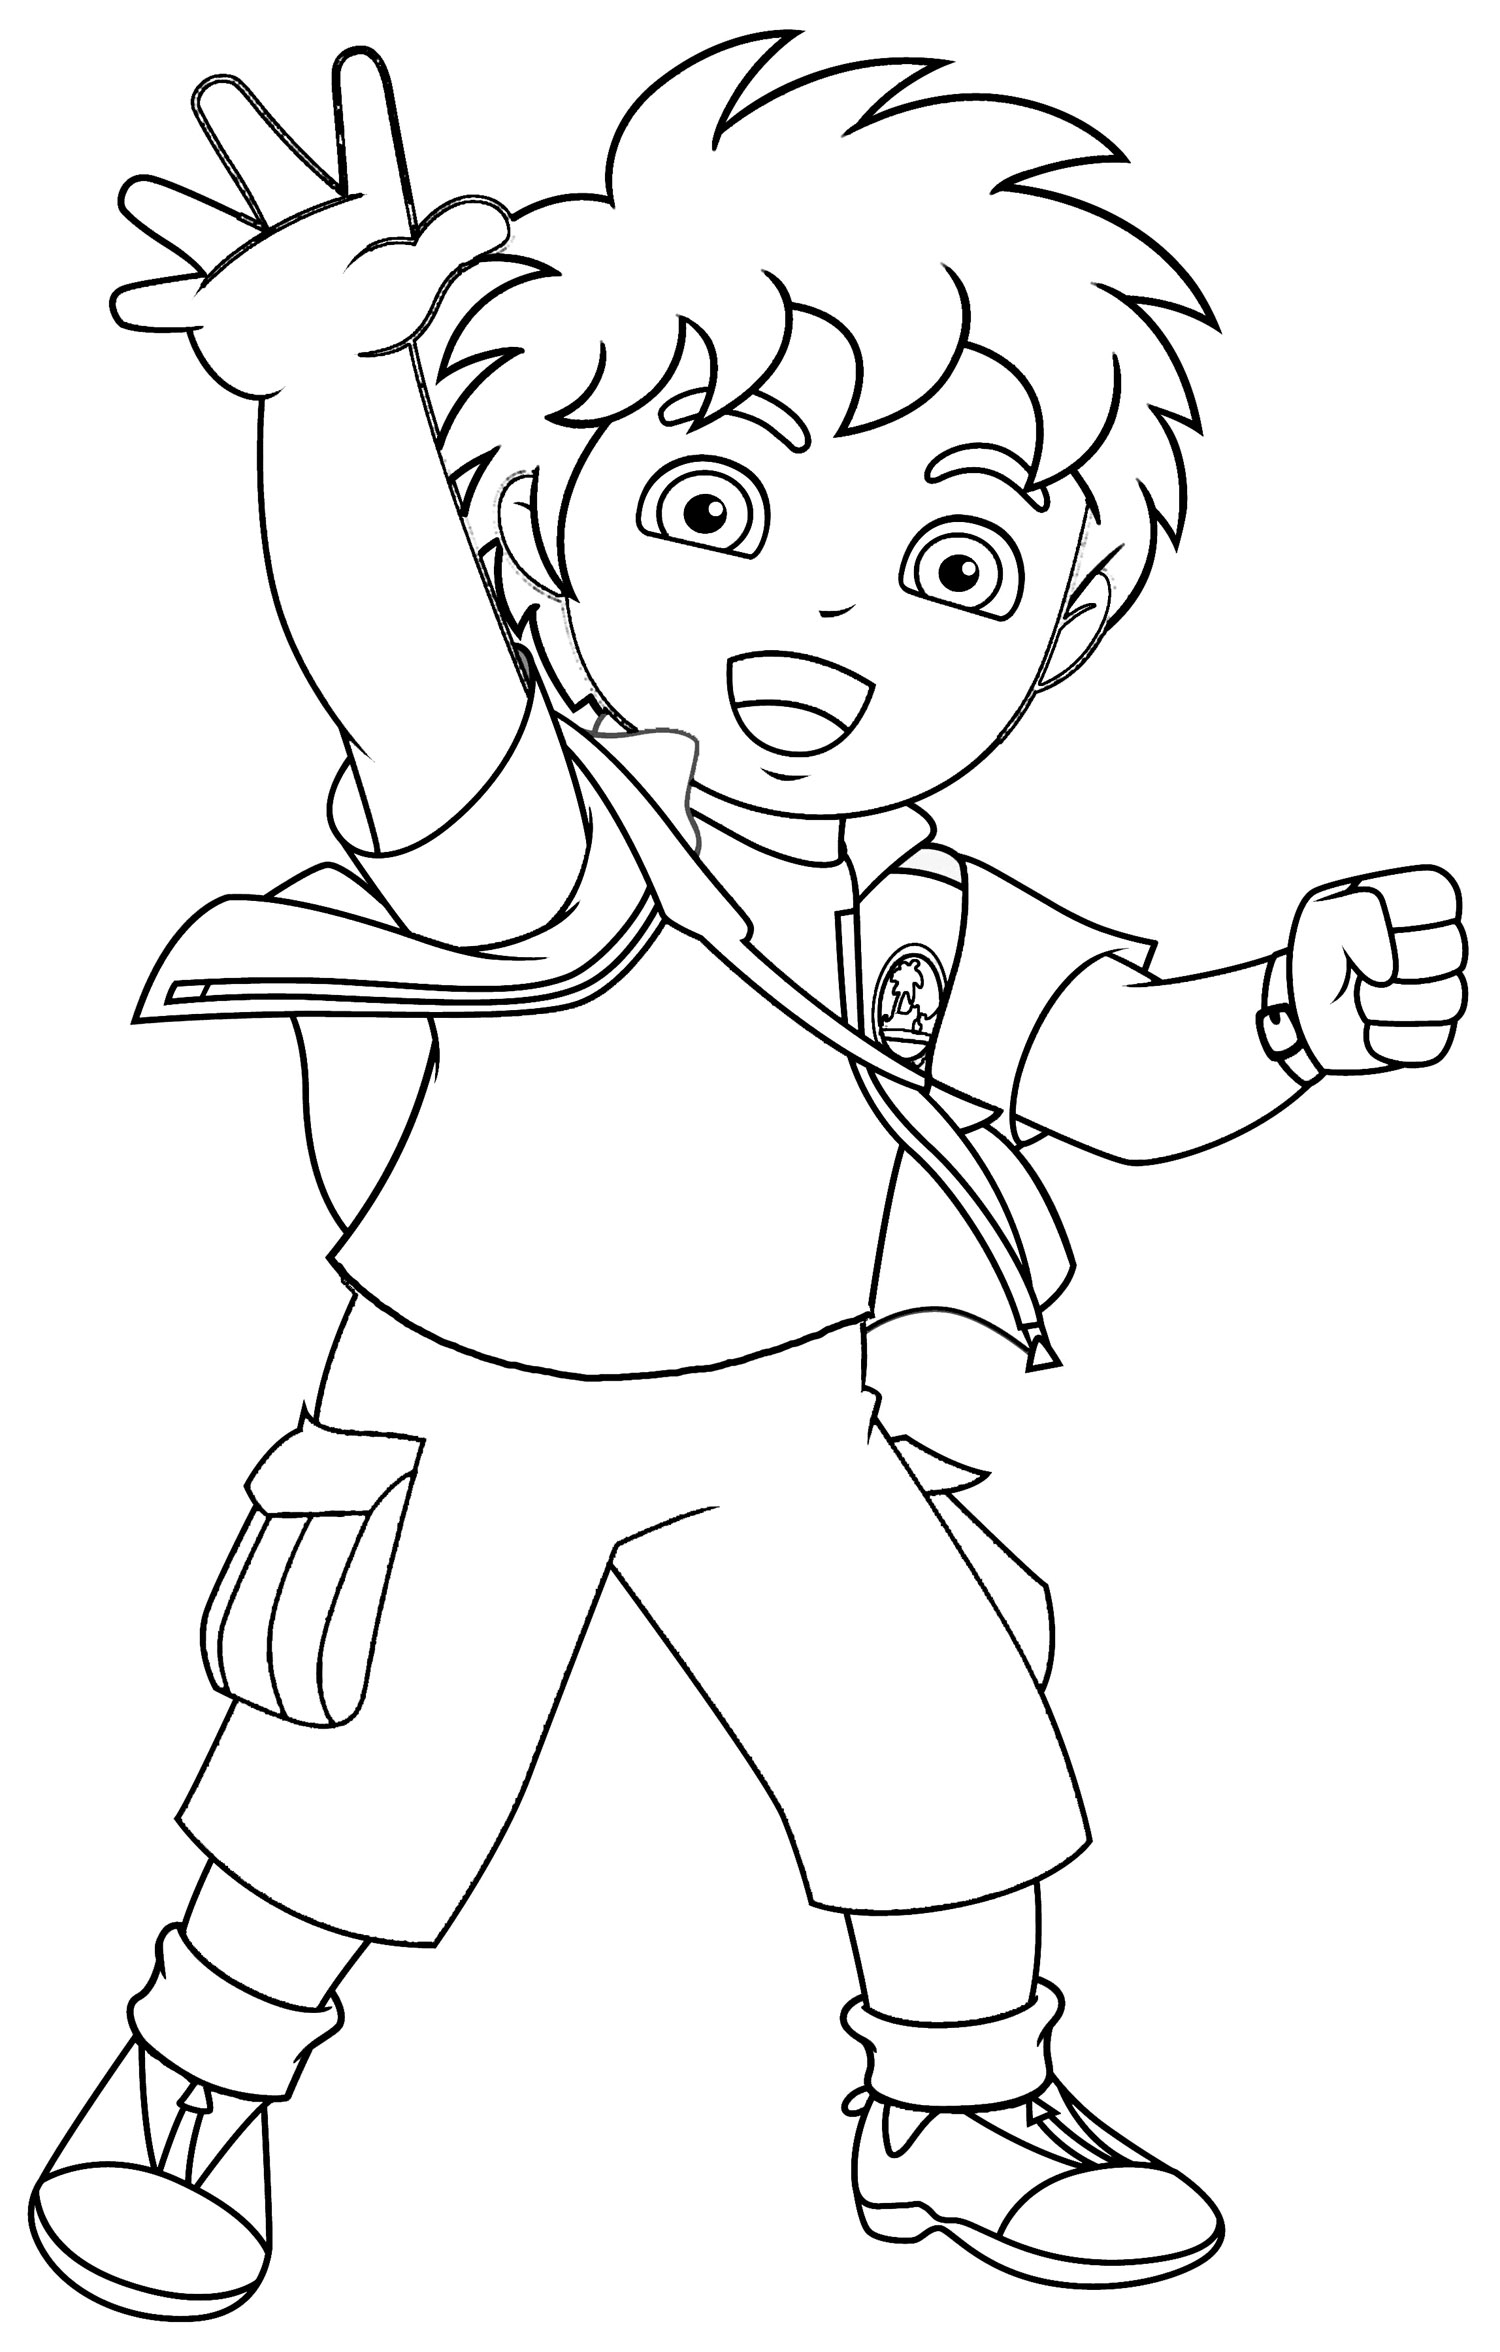 Printable coloring pages diego thanhhunggroup.info